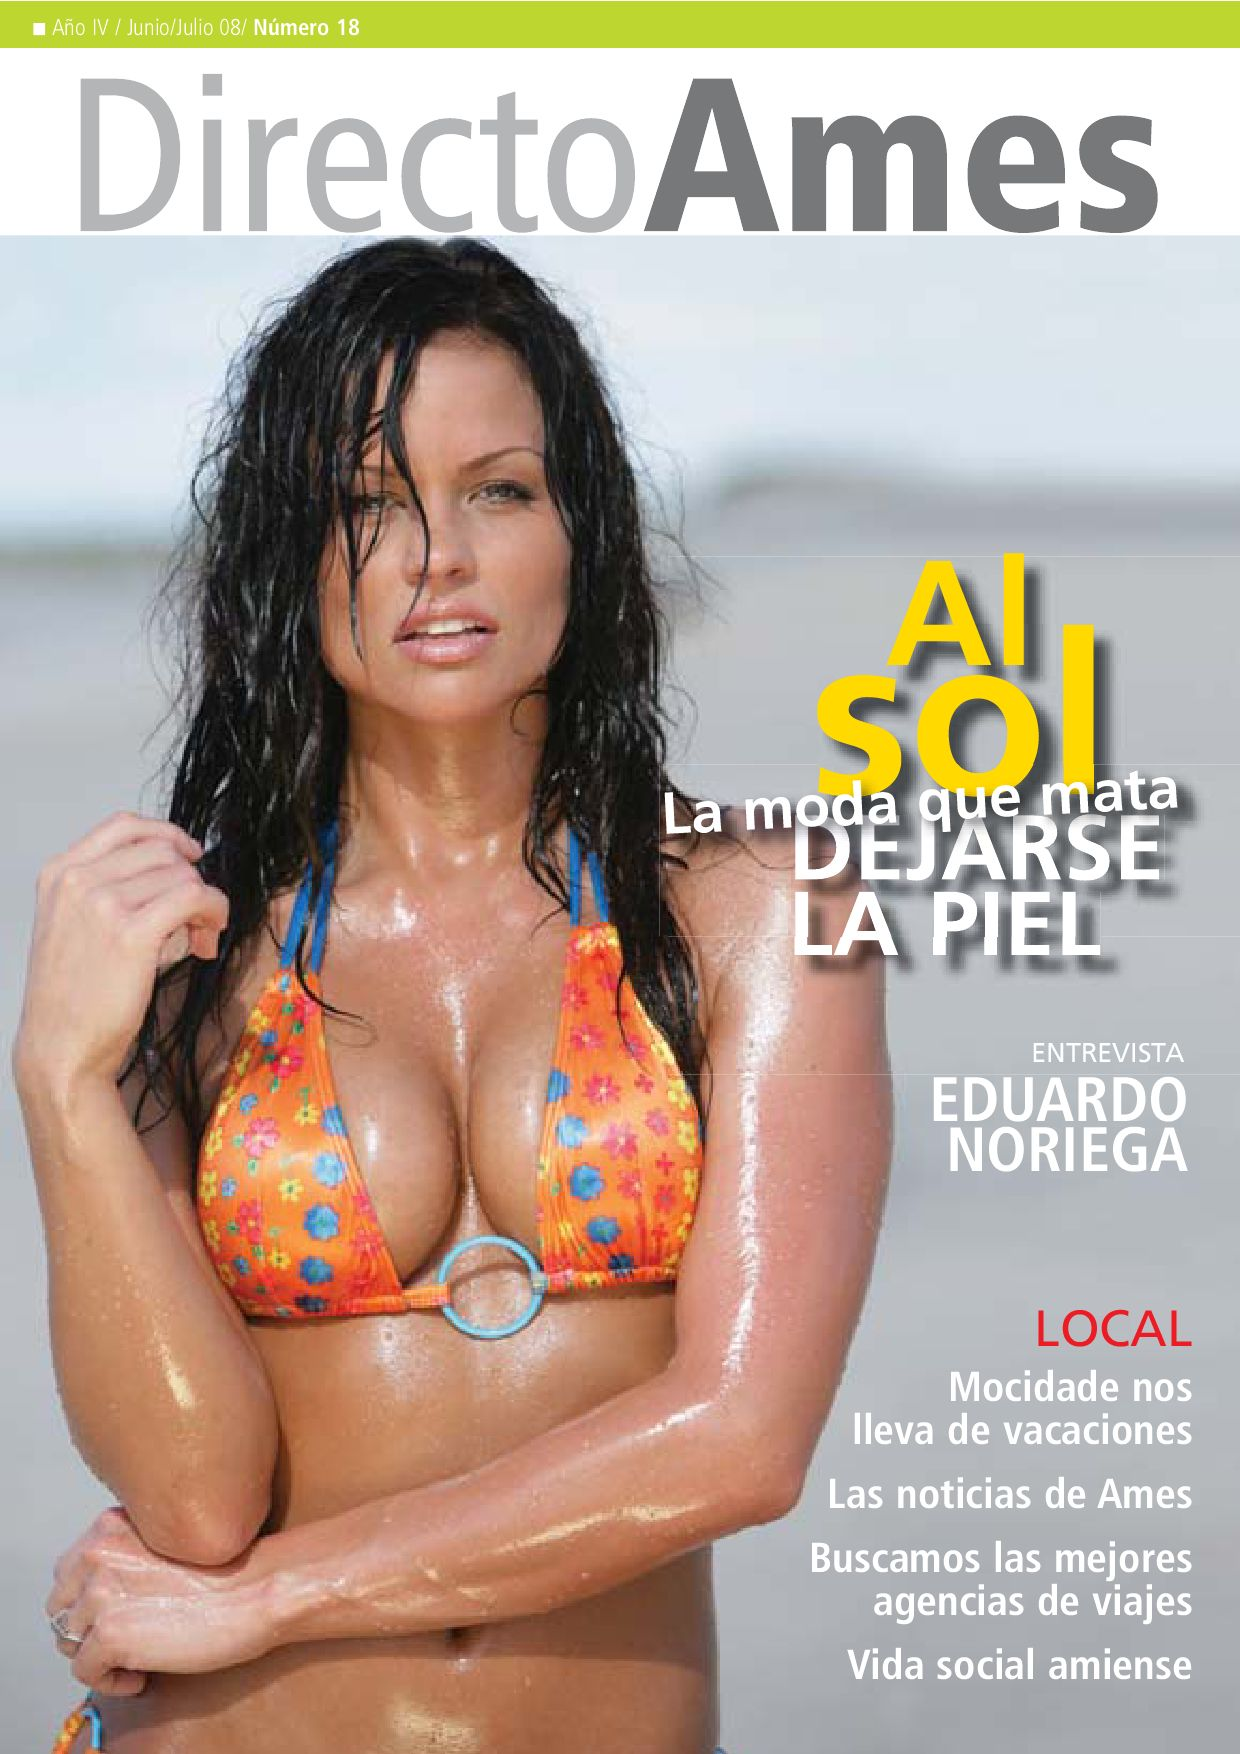 Directo Saco 18 By Ames Issuu Patricia 0mNn8Ovw